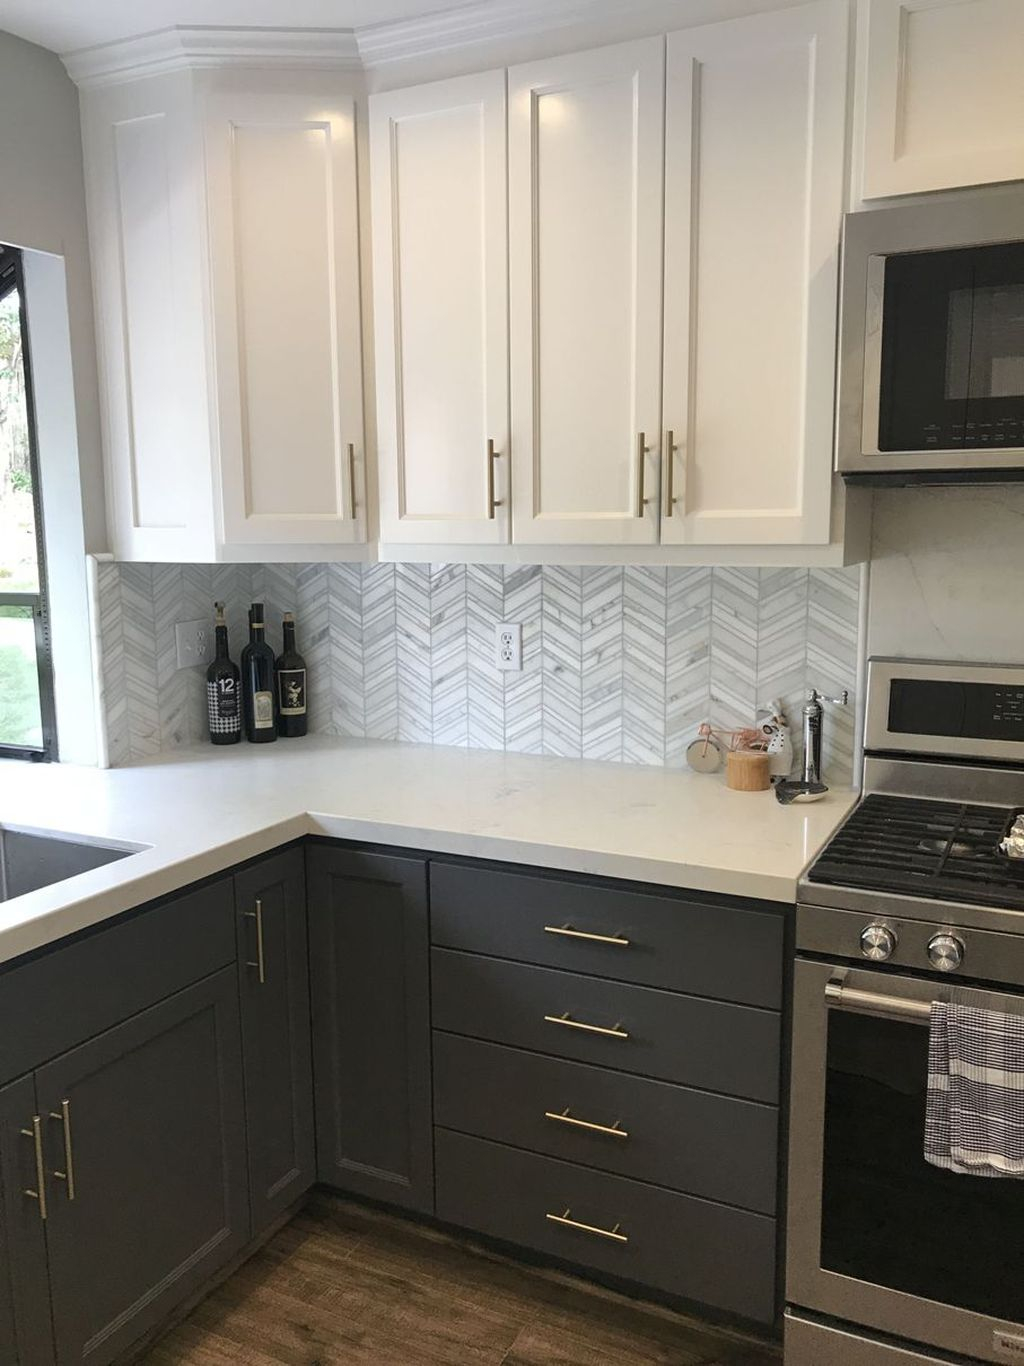 Classy Kitchen Remodeling Ideas On A Budget This Year 20